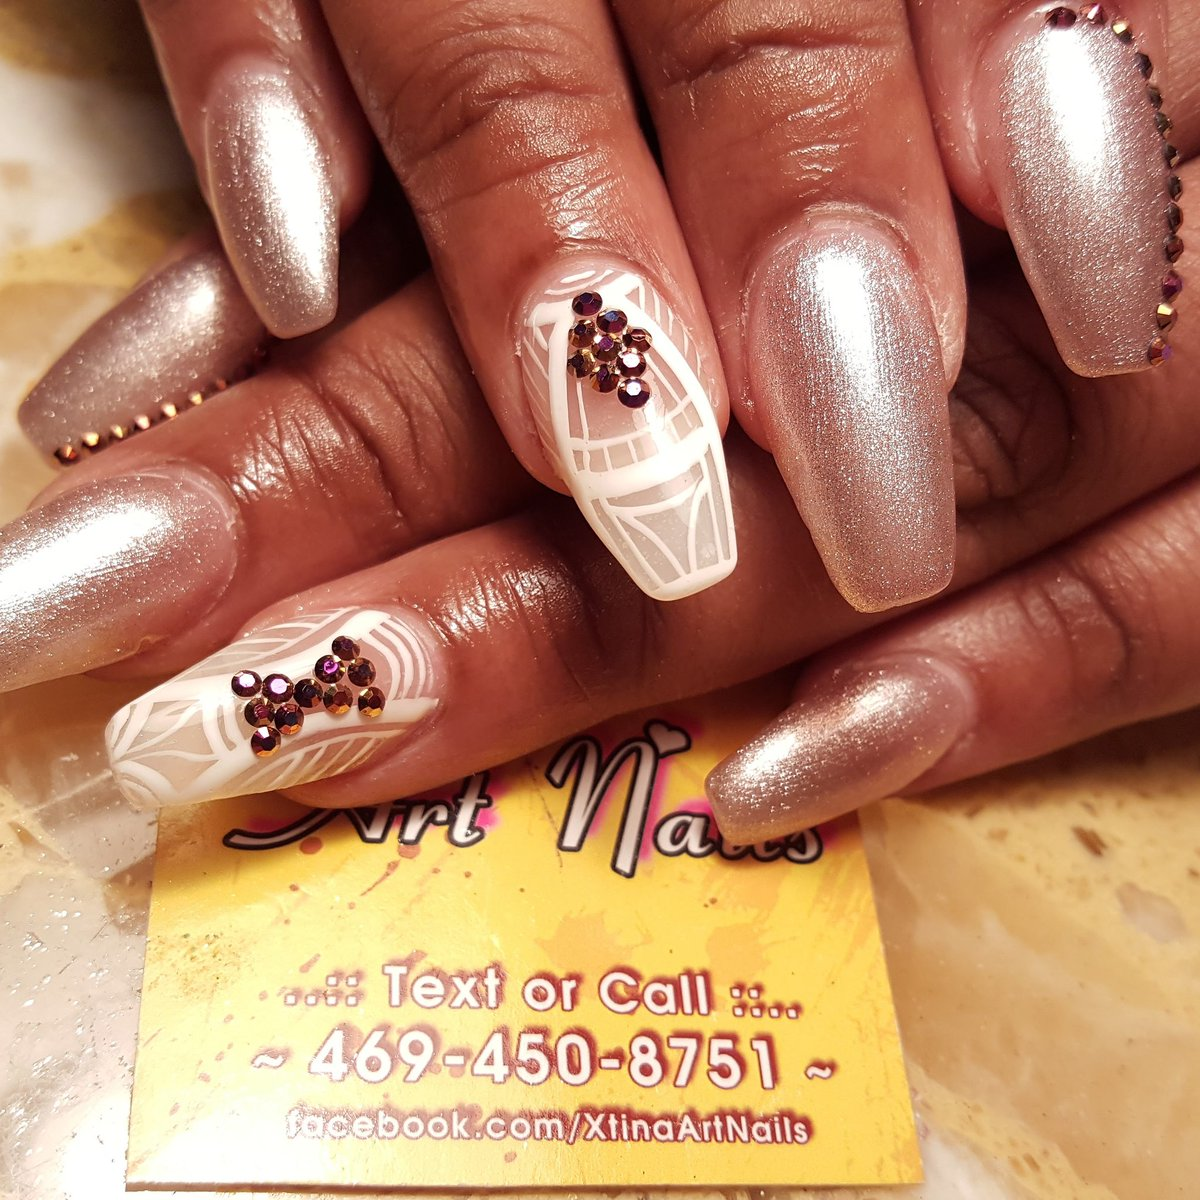 Xtina Art Nails On Twitter The Top Best Nail In Dallas Dfw 469 450 8751 Nailart Nailswag Beauty